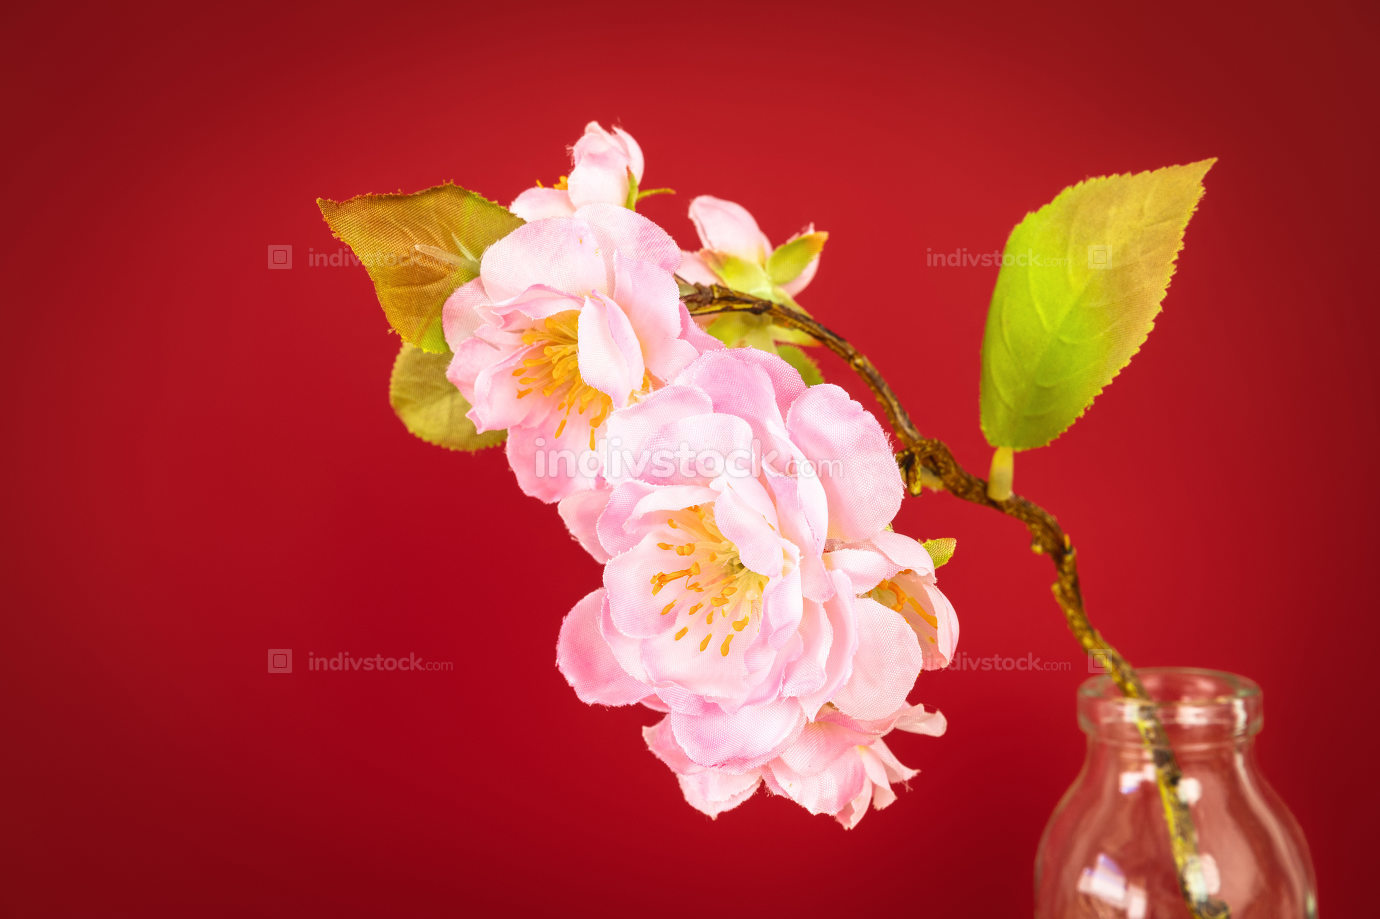 red background with artificial cherry blossoms